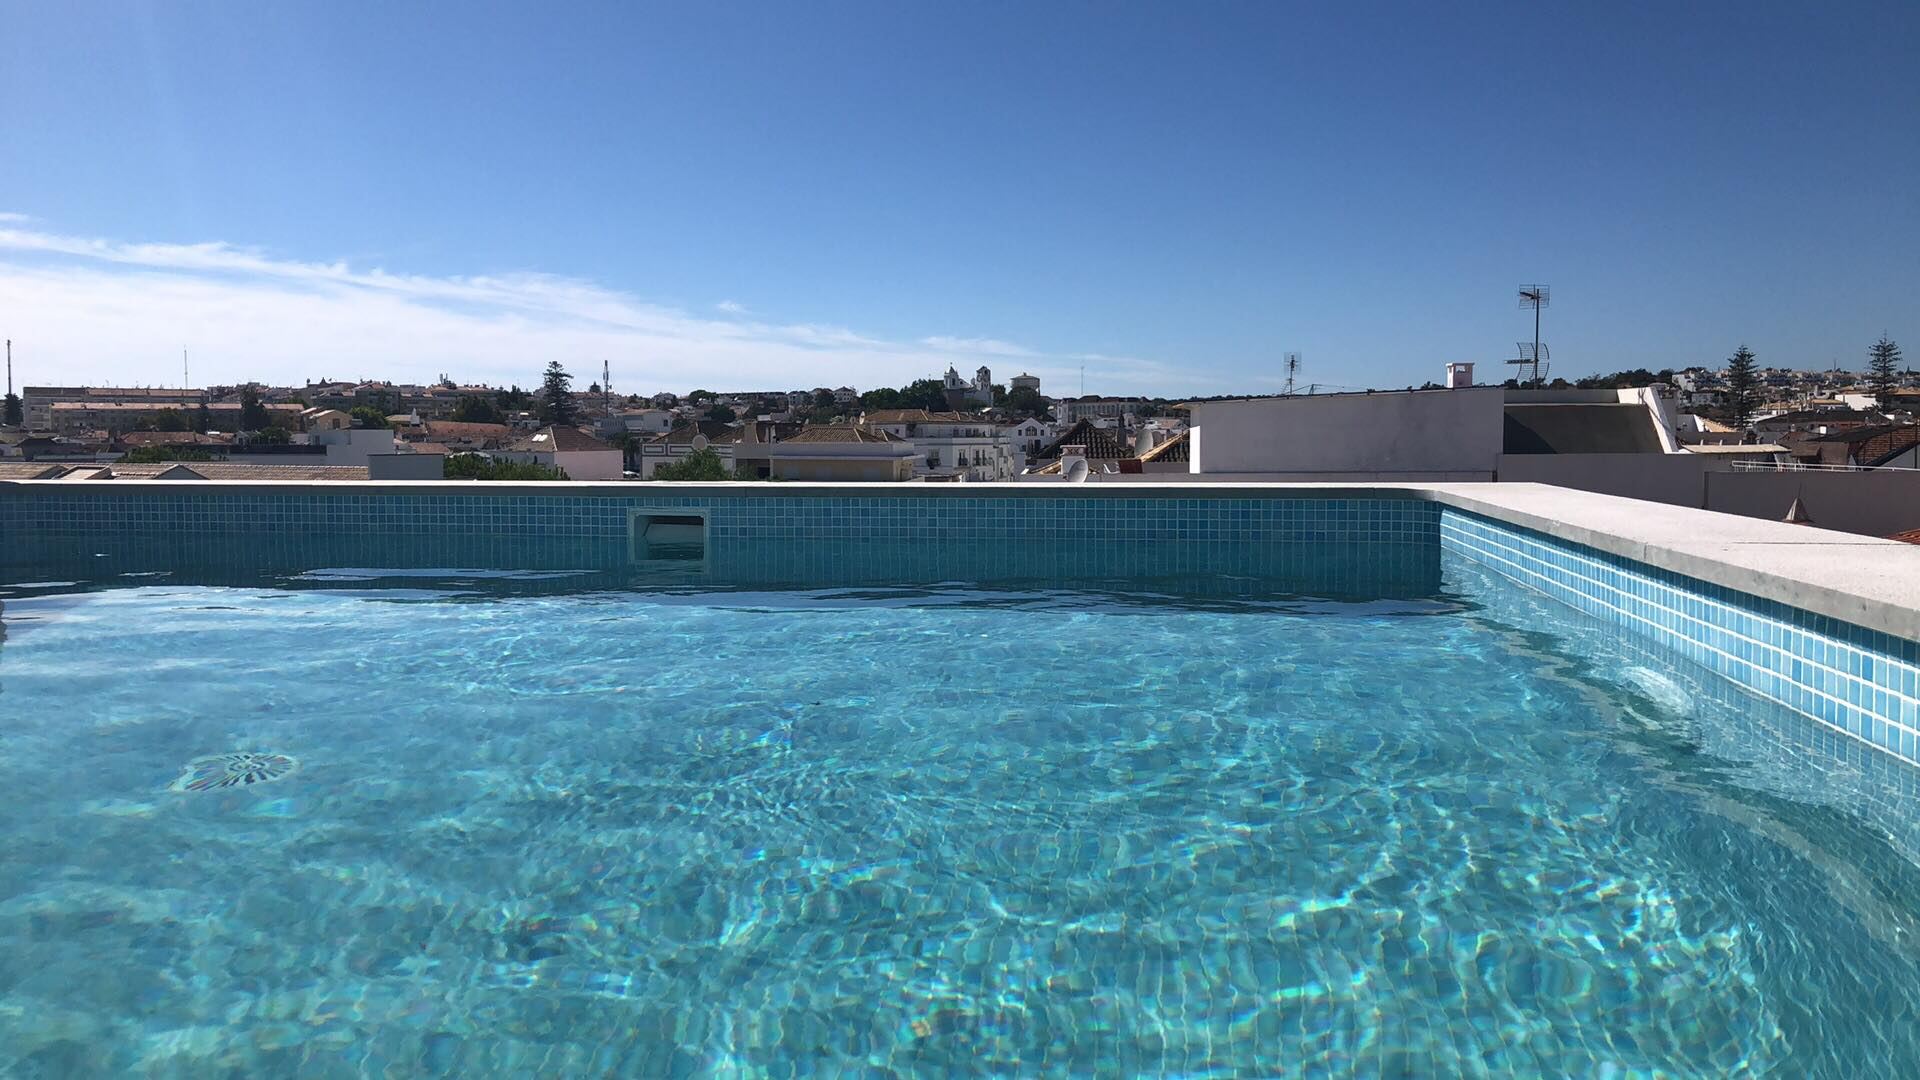 Swimming Pool - Rooftop